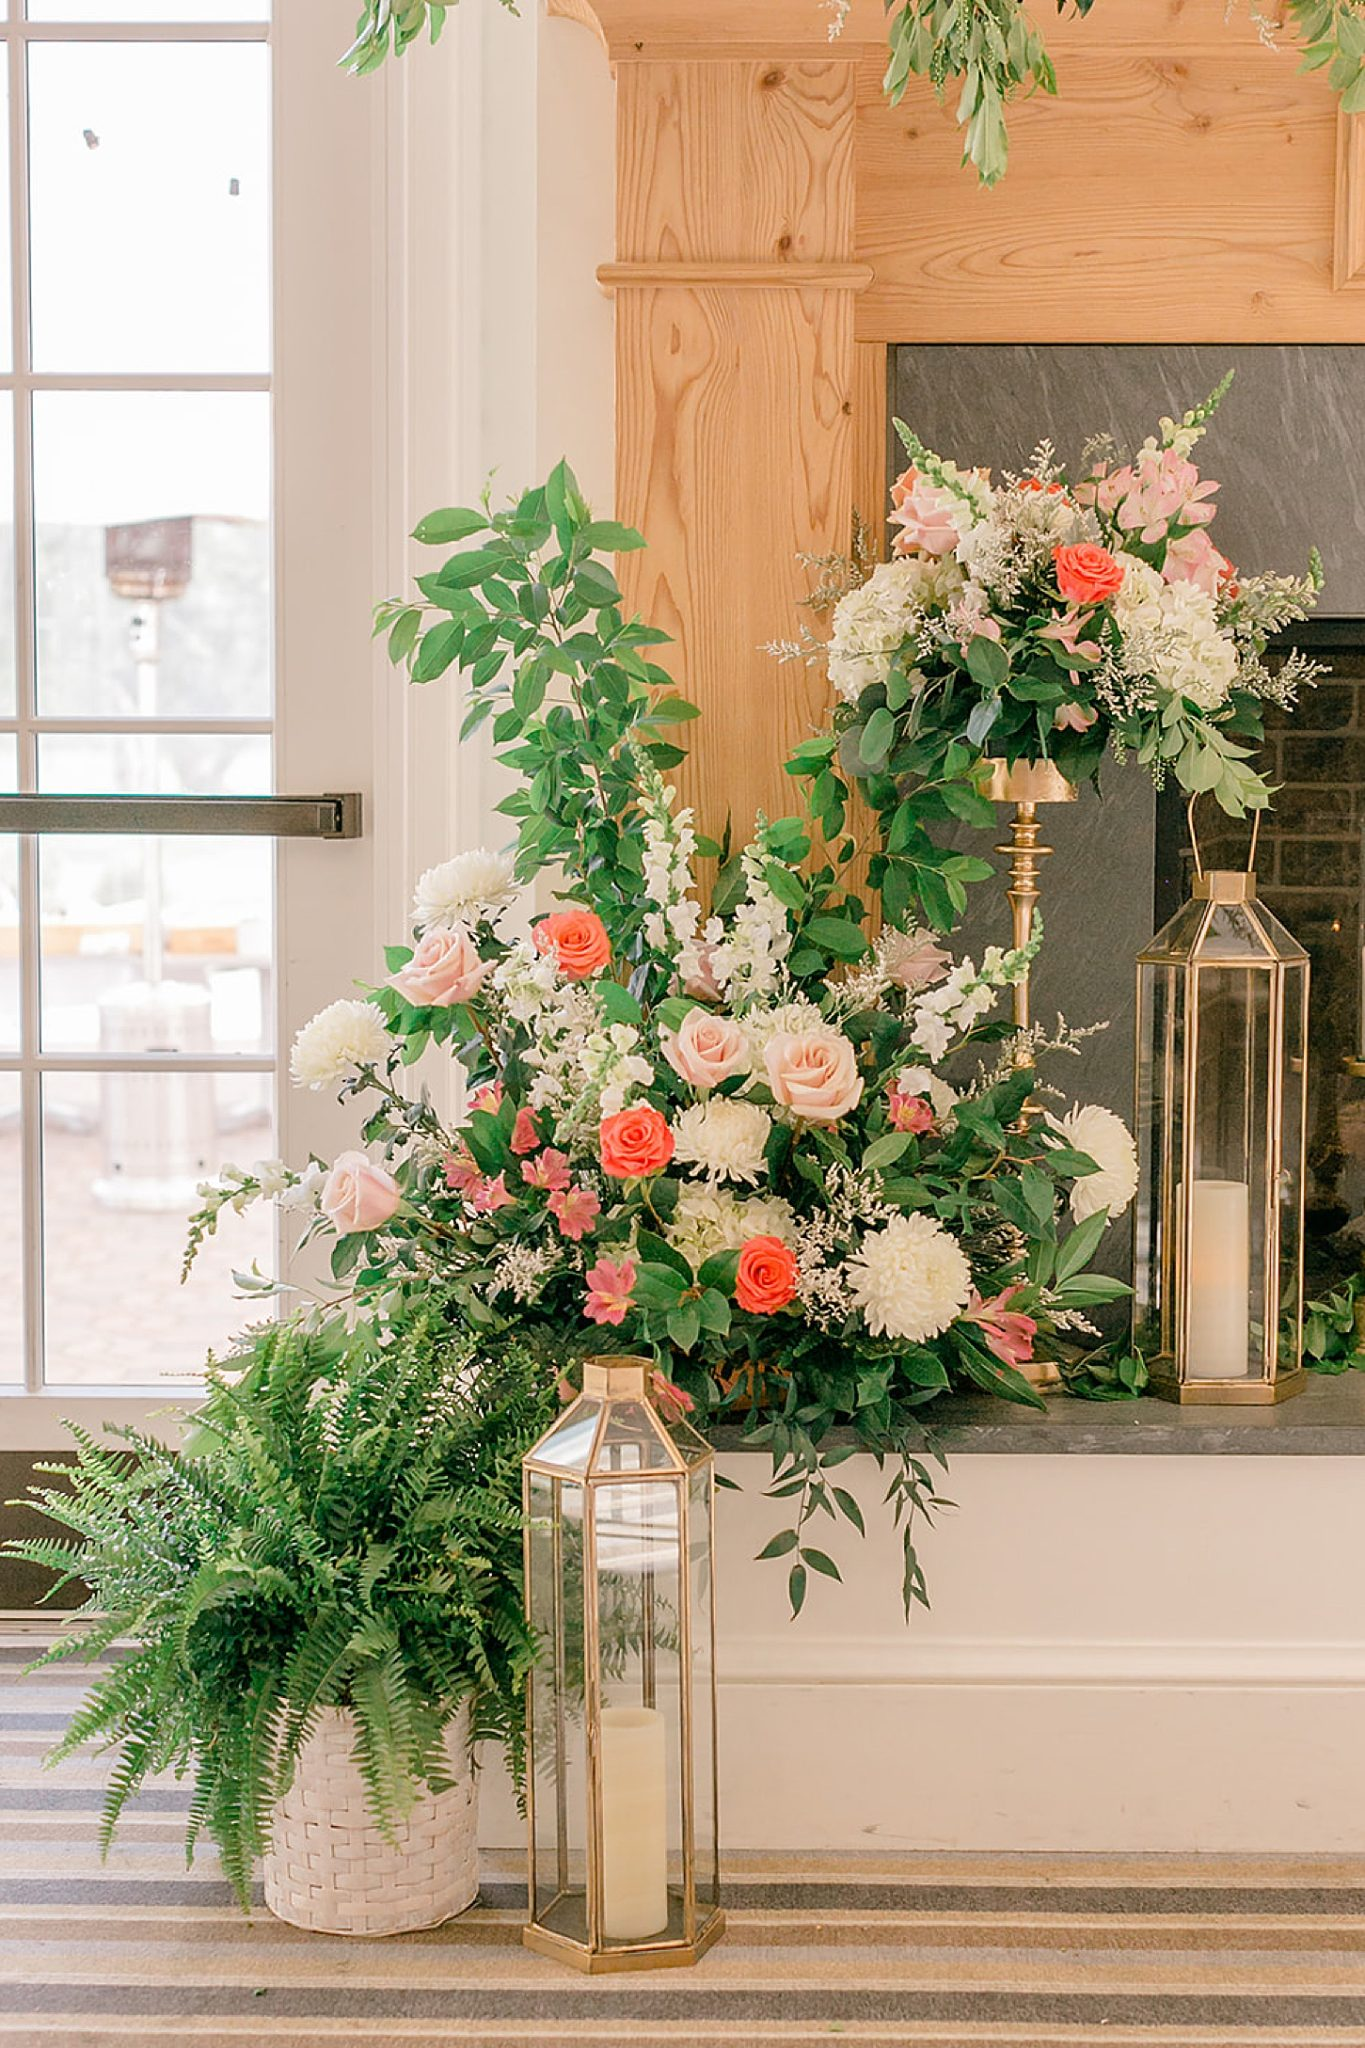 Linwood Country Club Summer Wedding Photography Studio by Magdalena Studios Jenn Kyle 0024 scaled